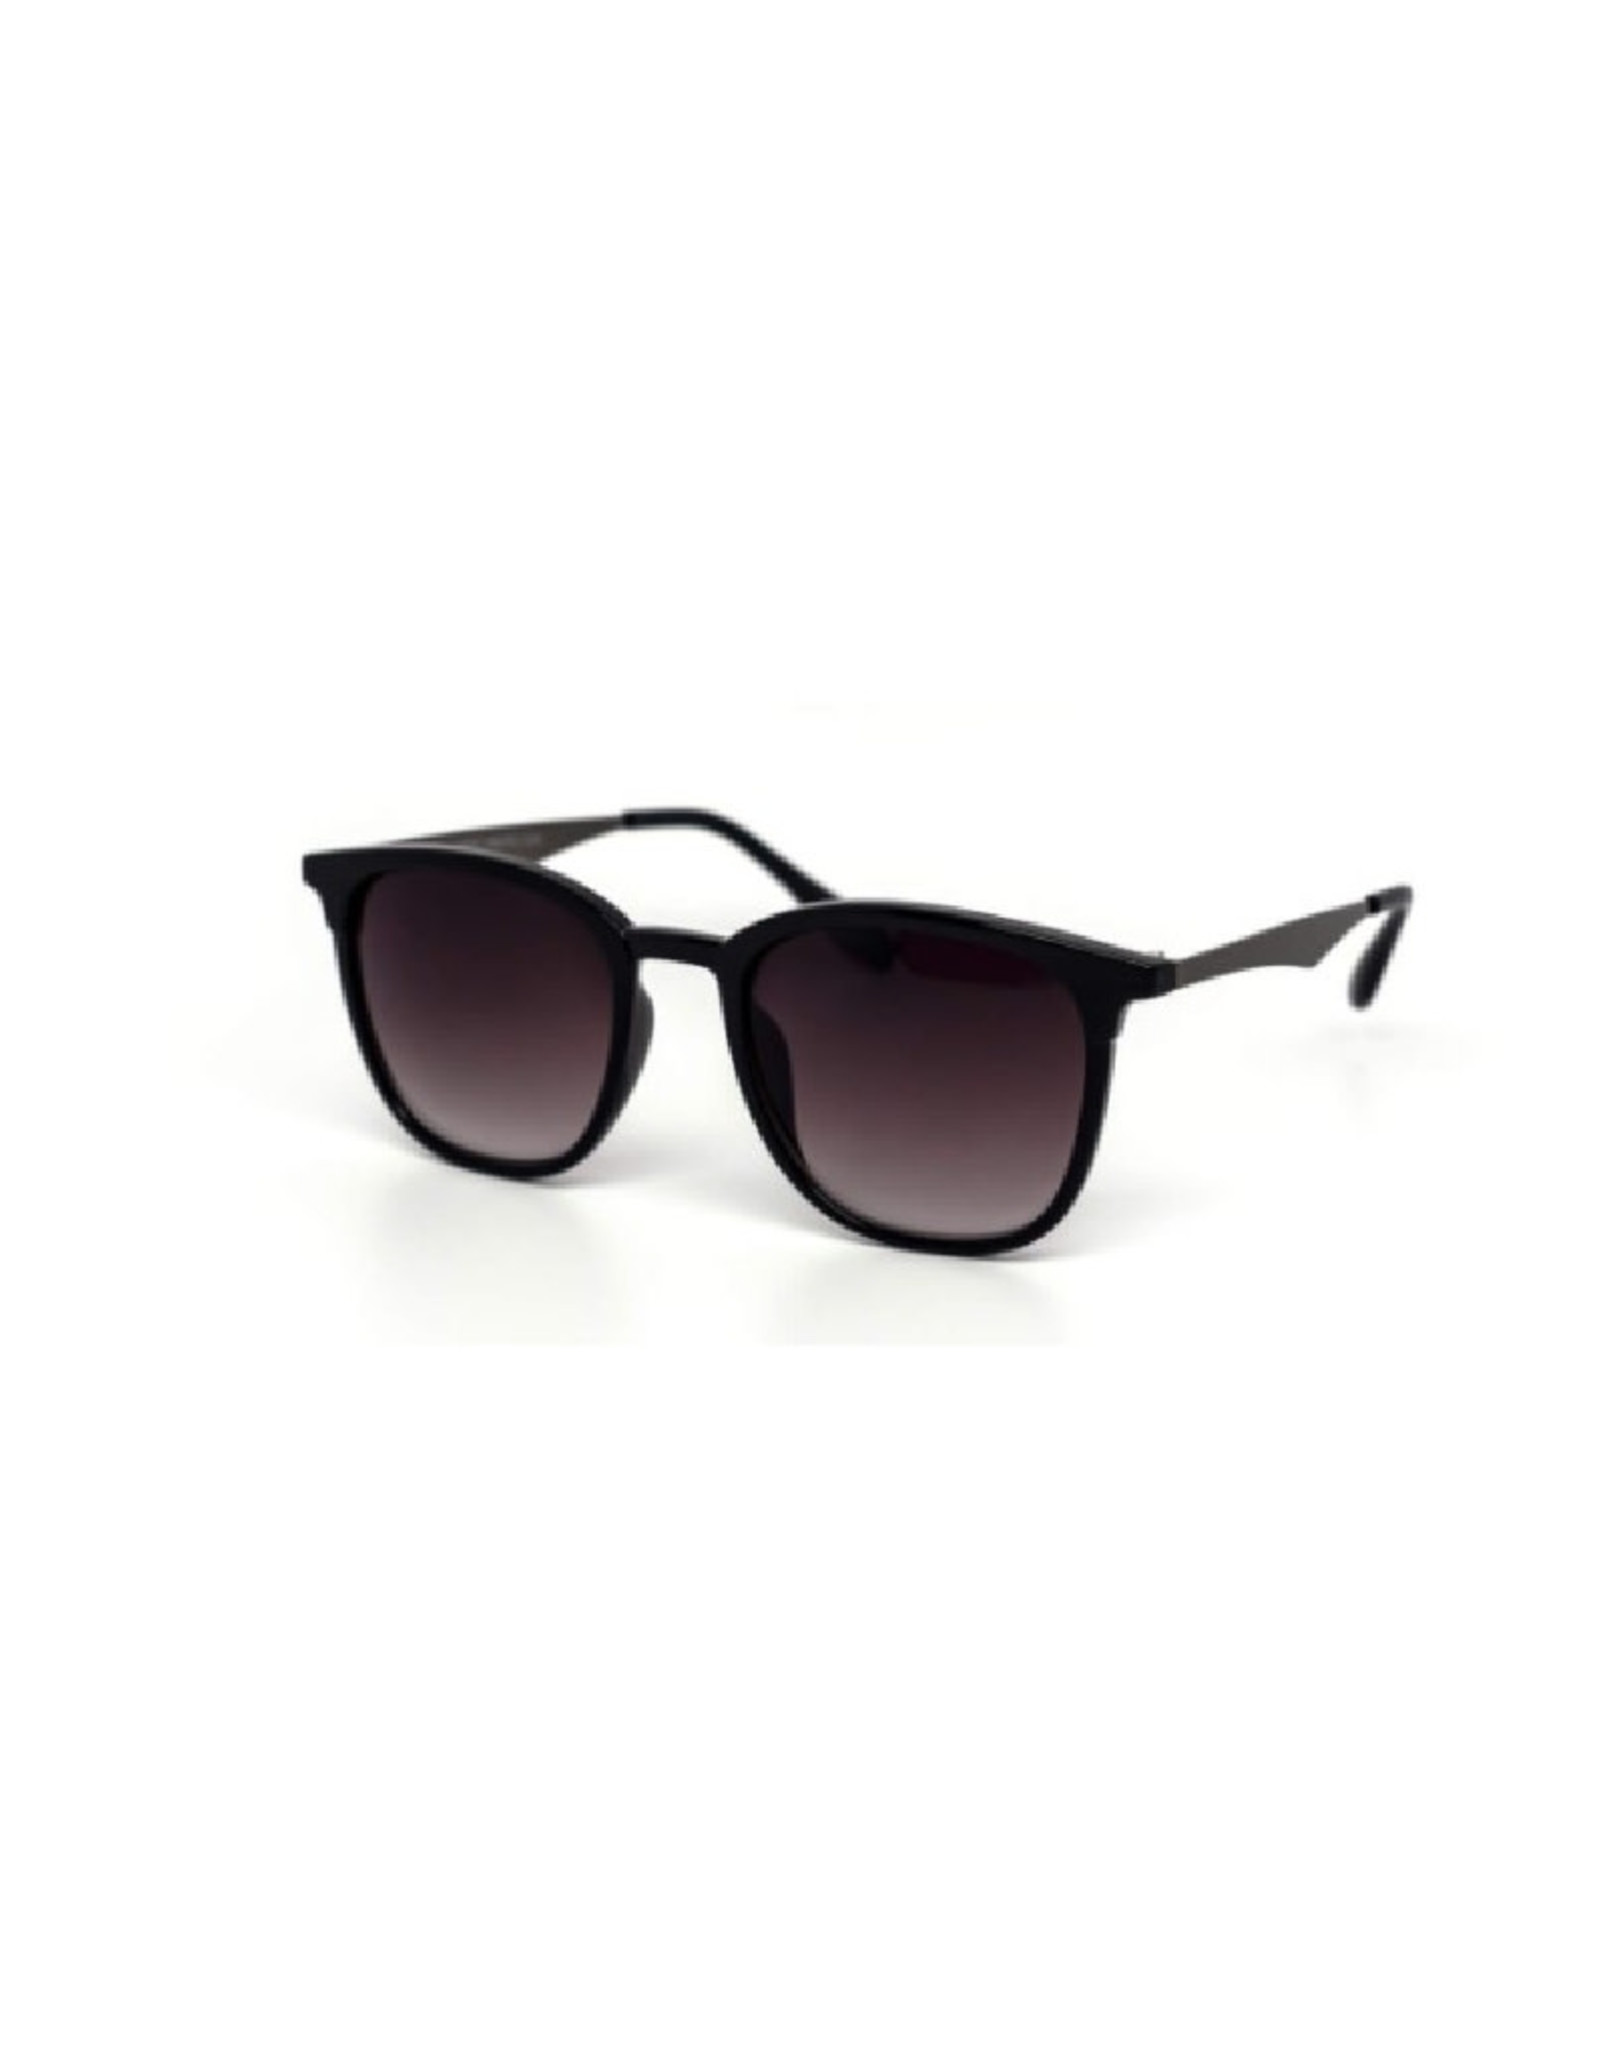 Sunglasses - Black Frames with Black Temples